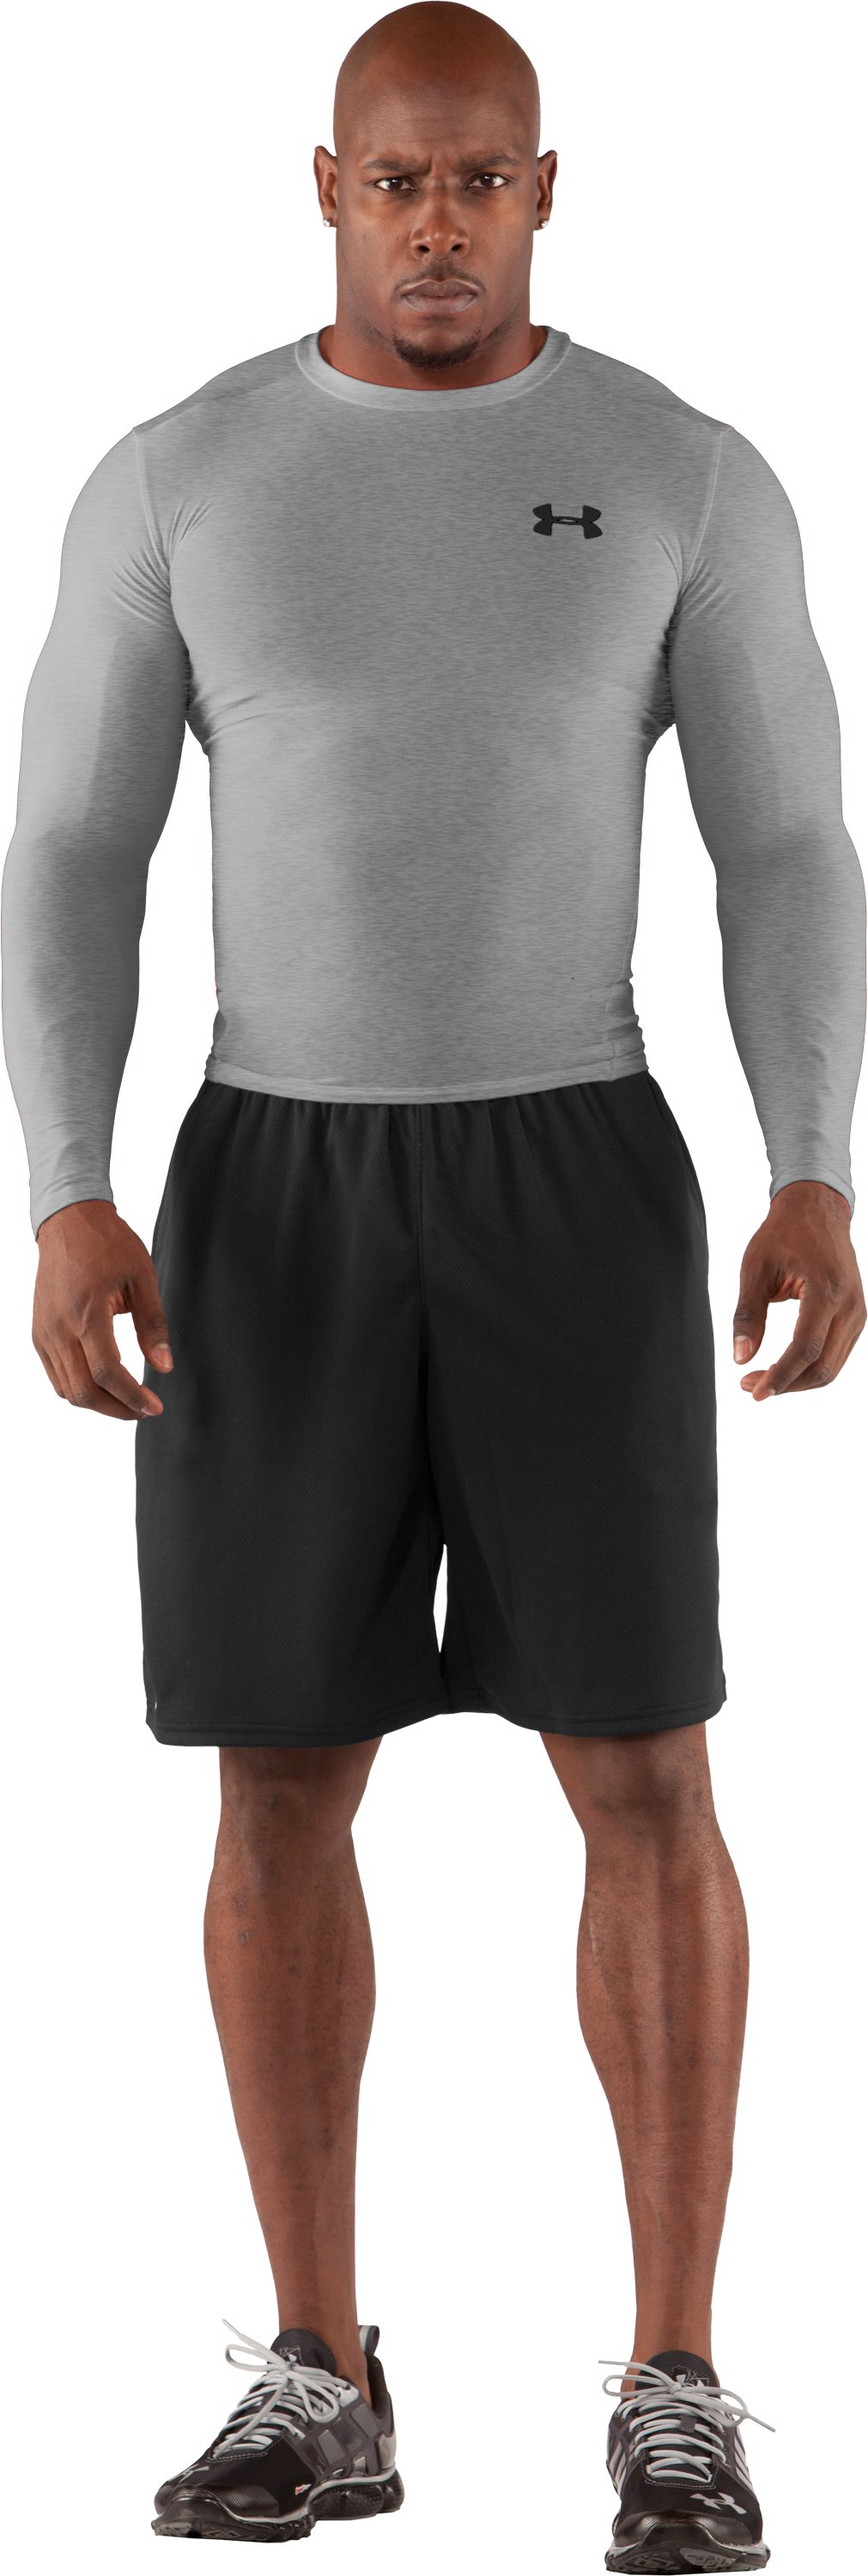 Men's HeatGear® Compression Long Sleeve T-Shirt, Medium Gray Heather